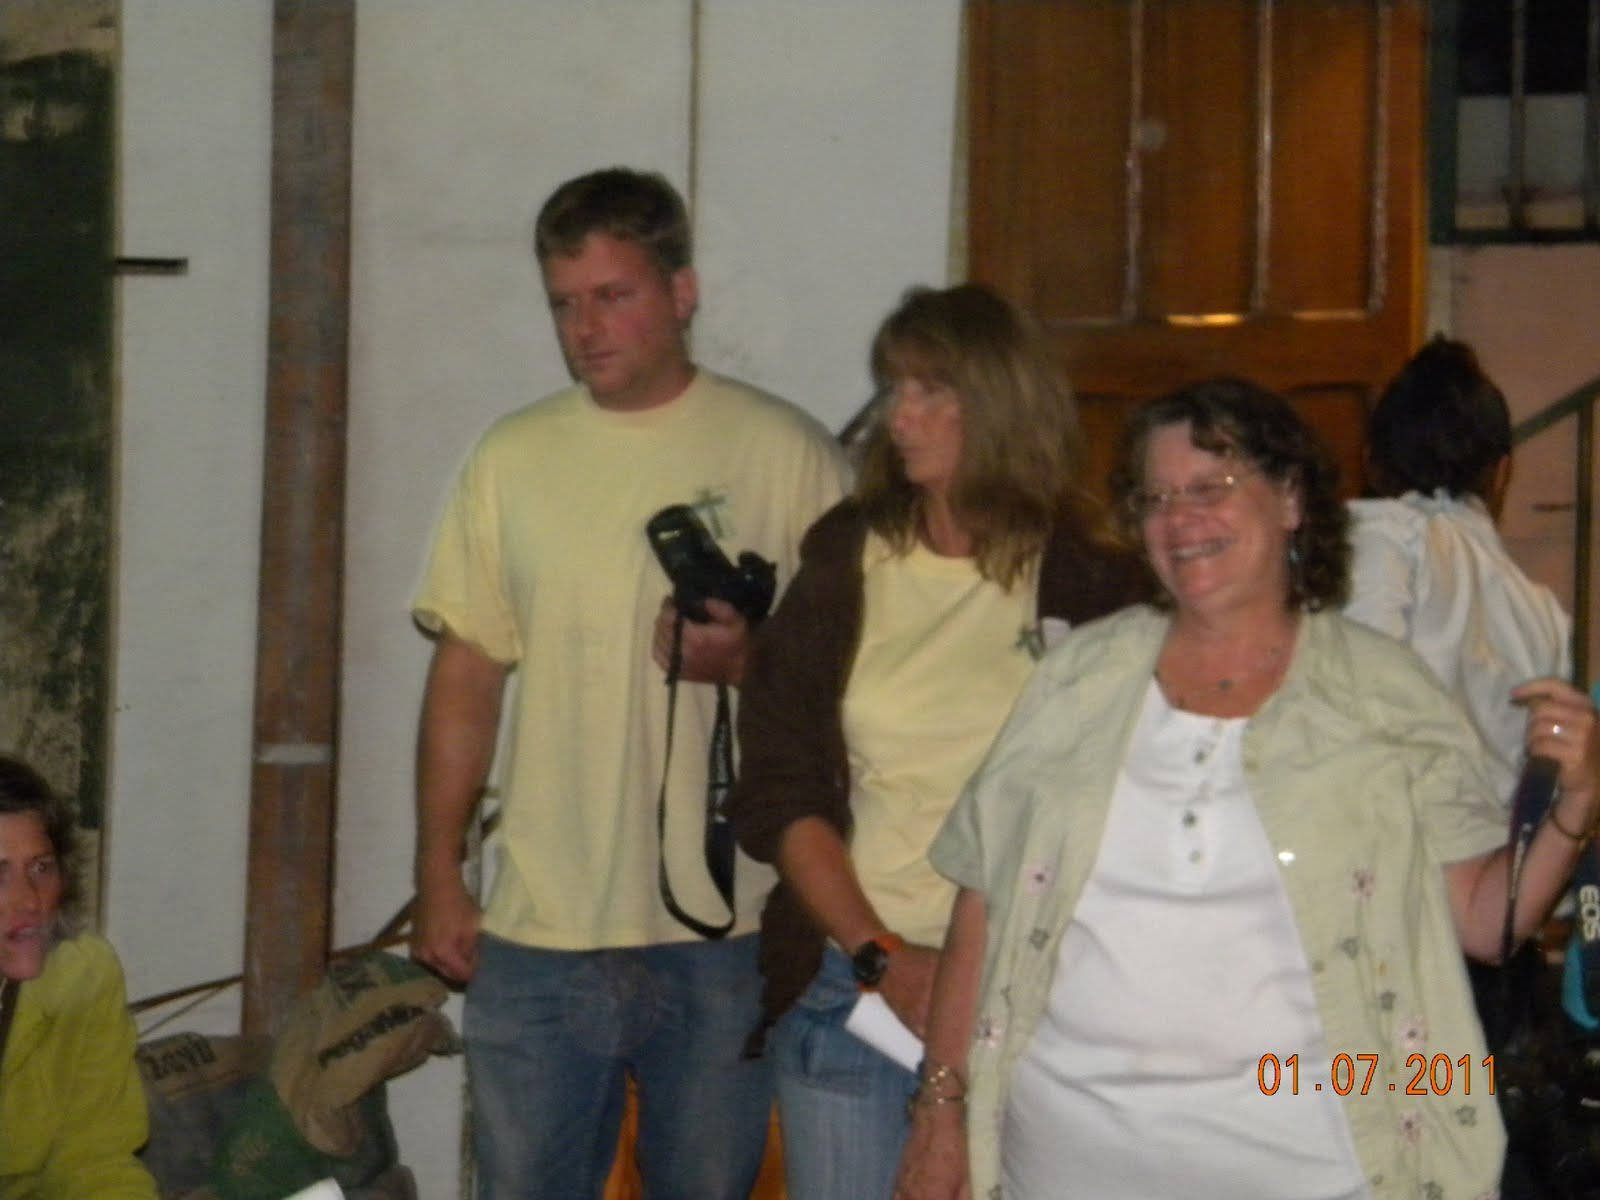 Keith Britton, Missionary at large in Costa Rica: GOD IN ACTION